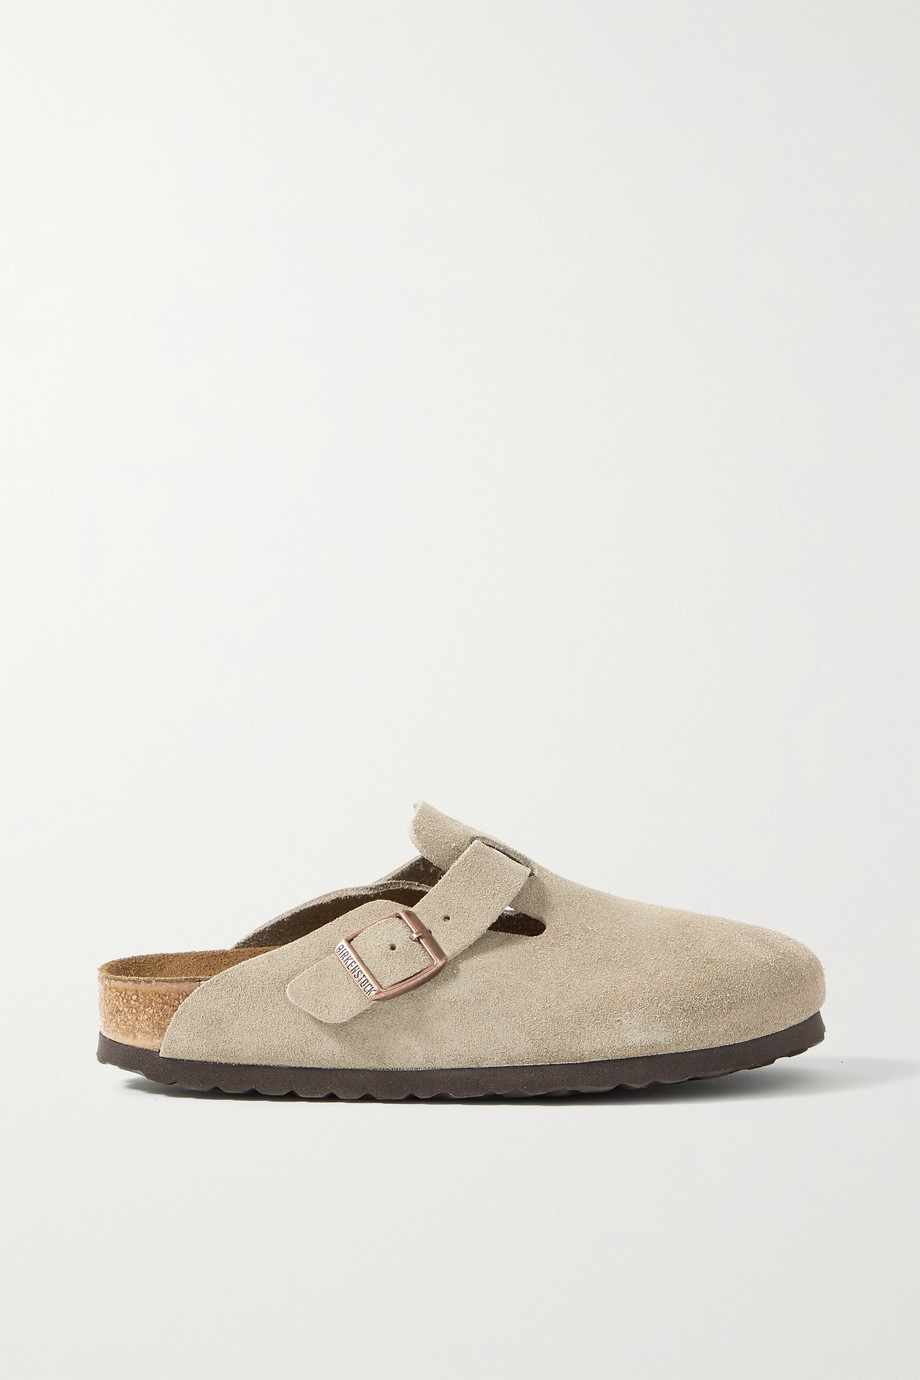 Birkenstock Boston suede slippers